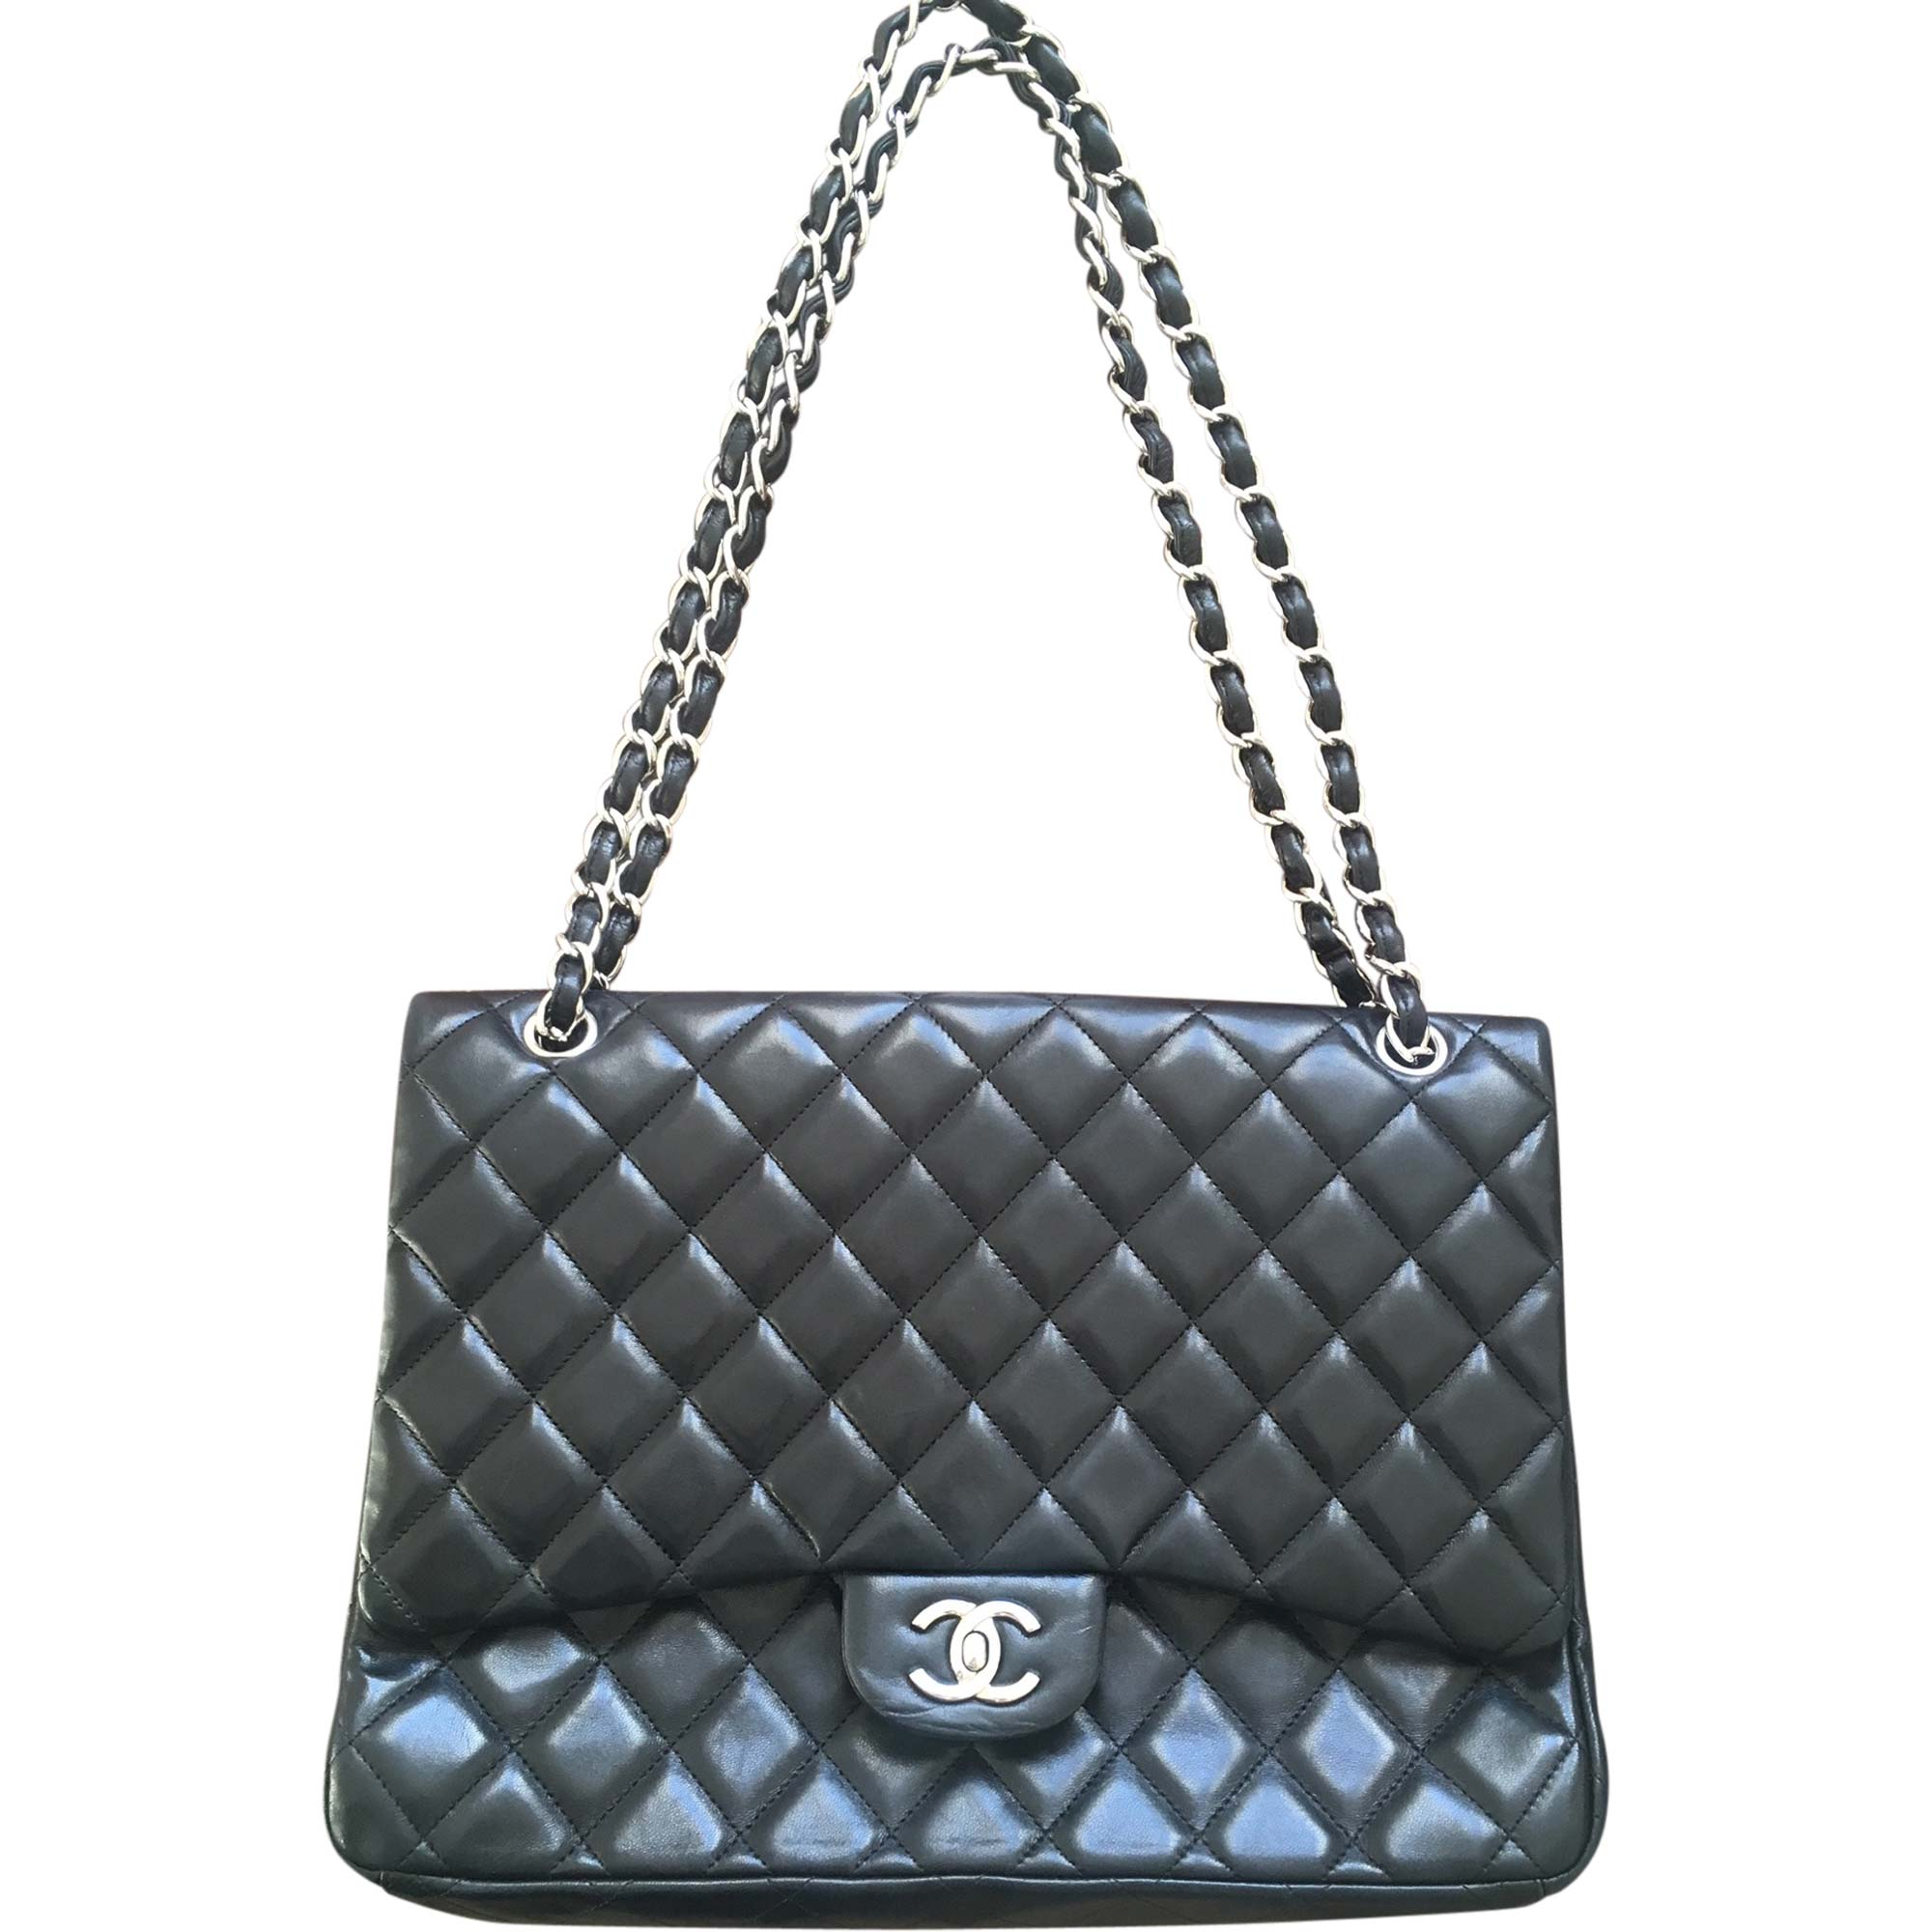 Leather Shoulder Bag CHANEL Timeless Black